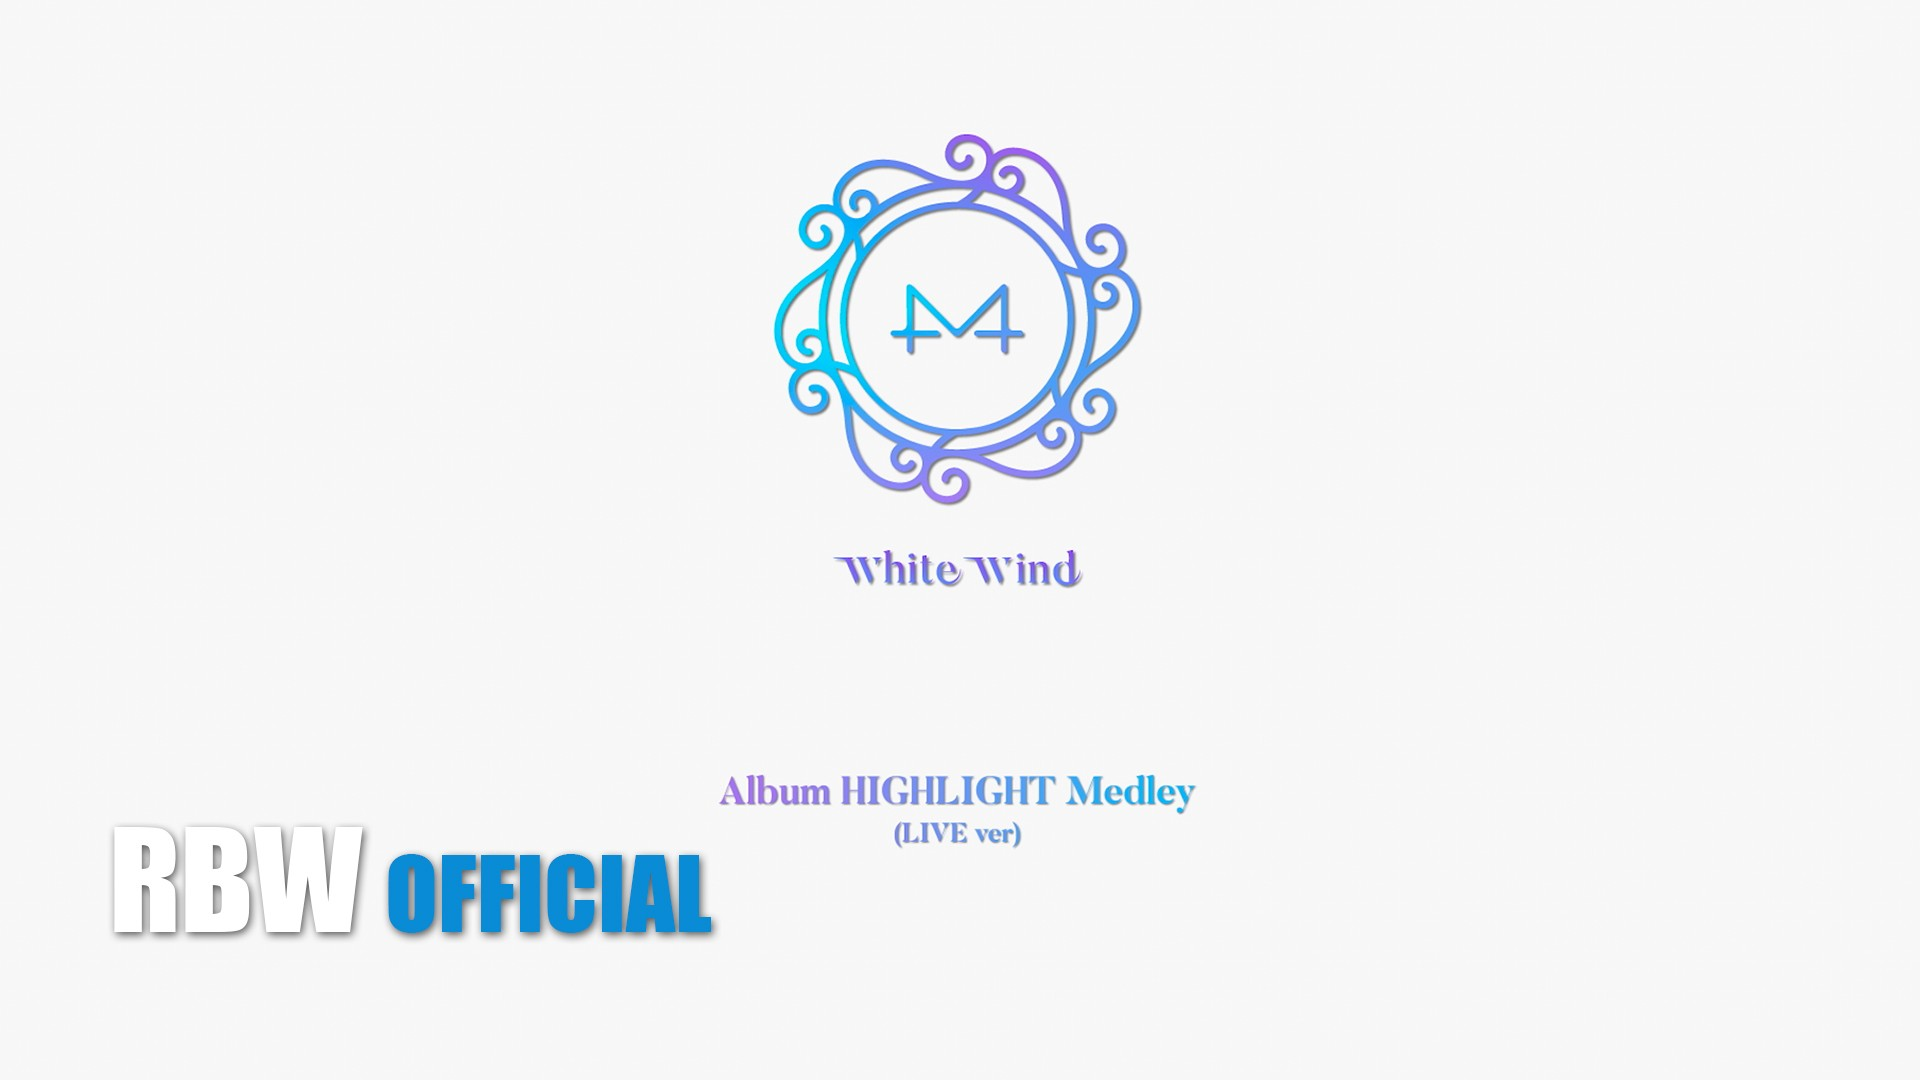 [HighLight] 'WHITE WIND' HIGHLIGHT MEDLEY(LIVE ver.)